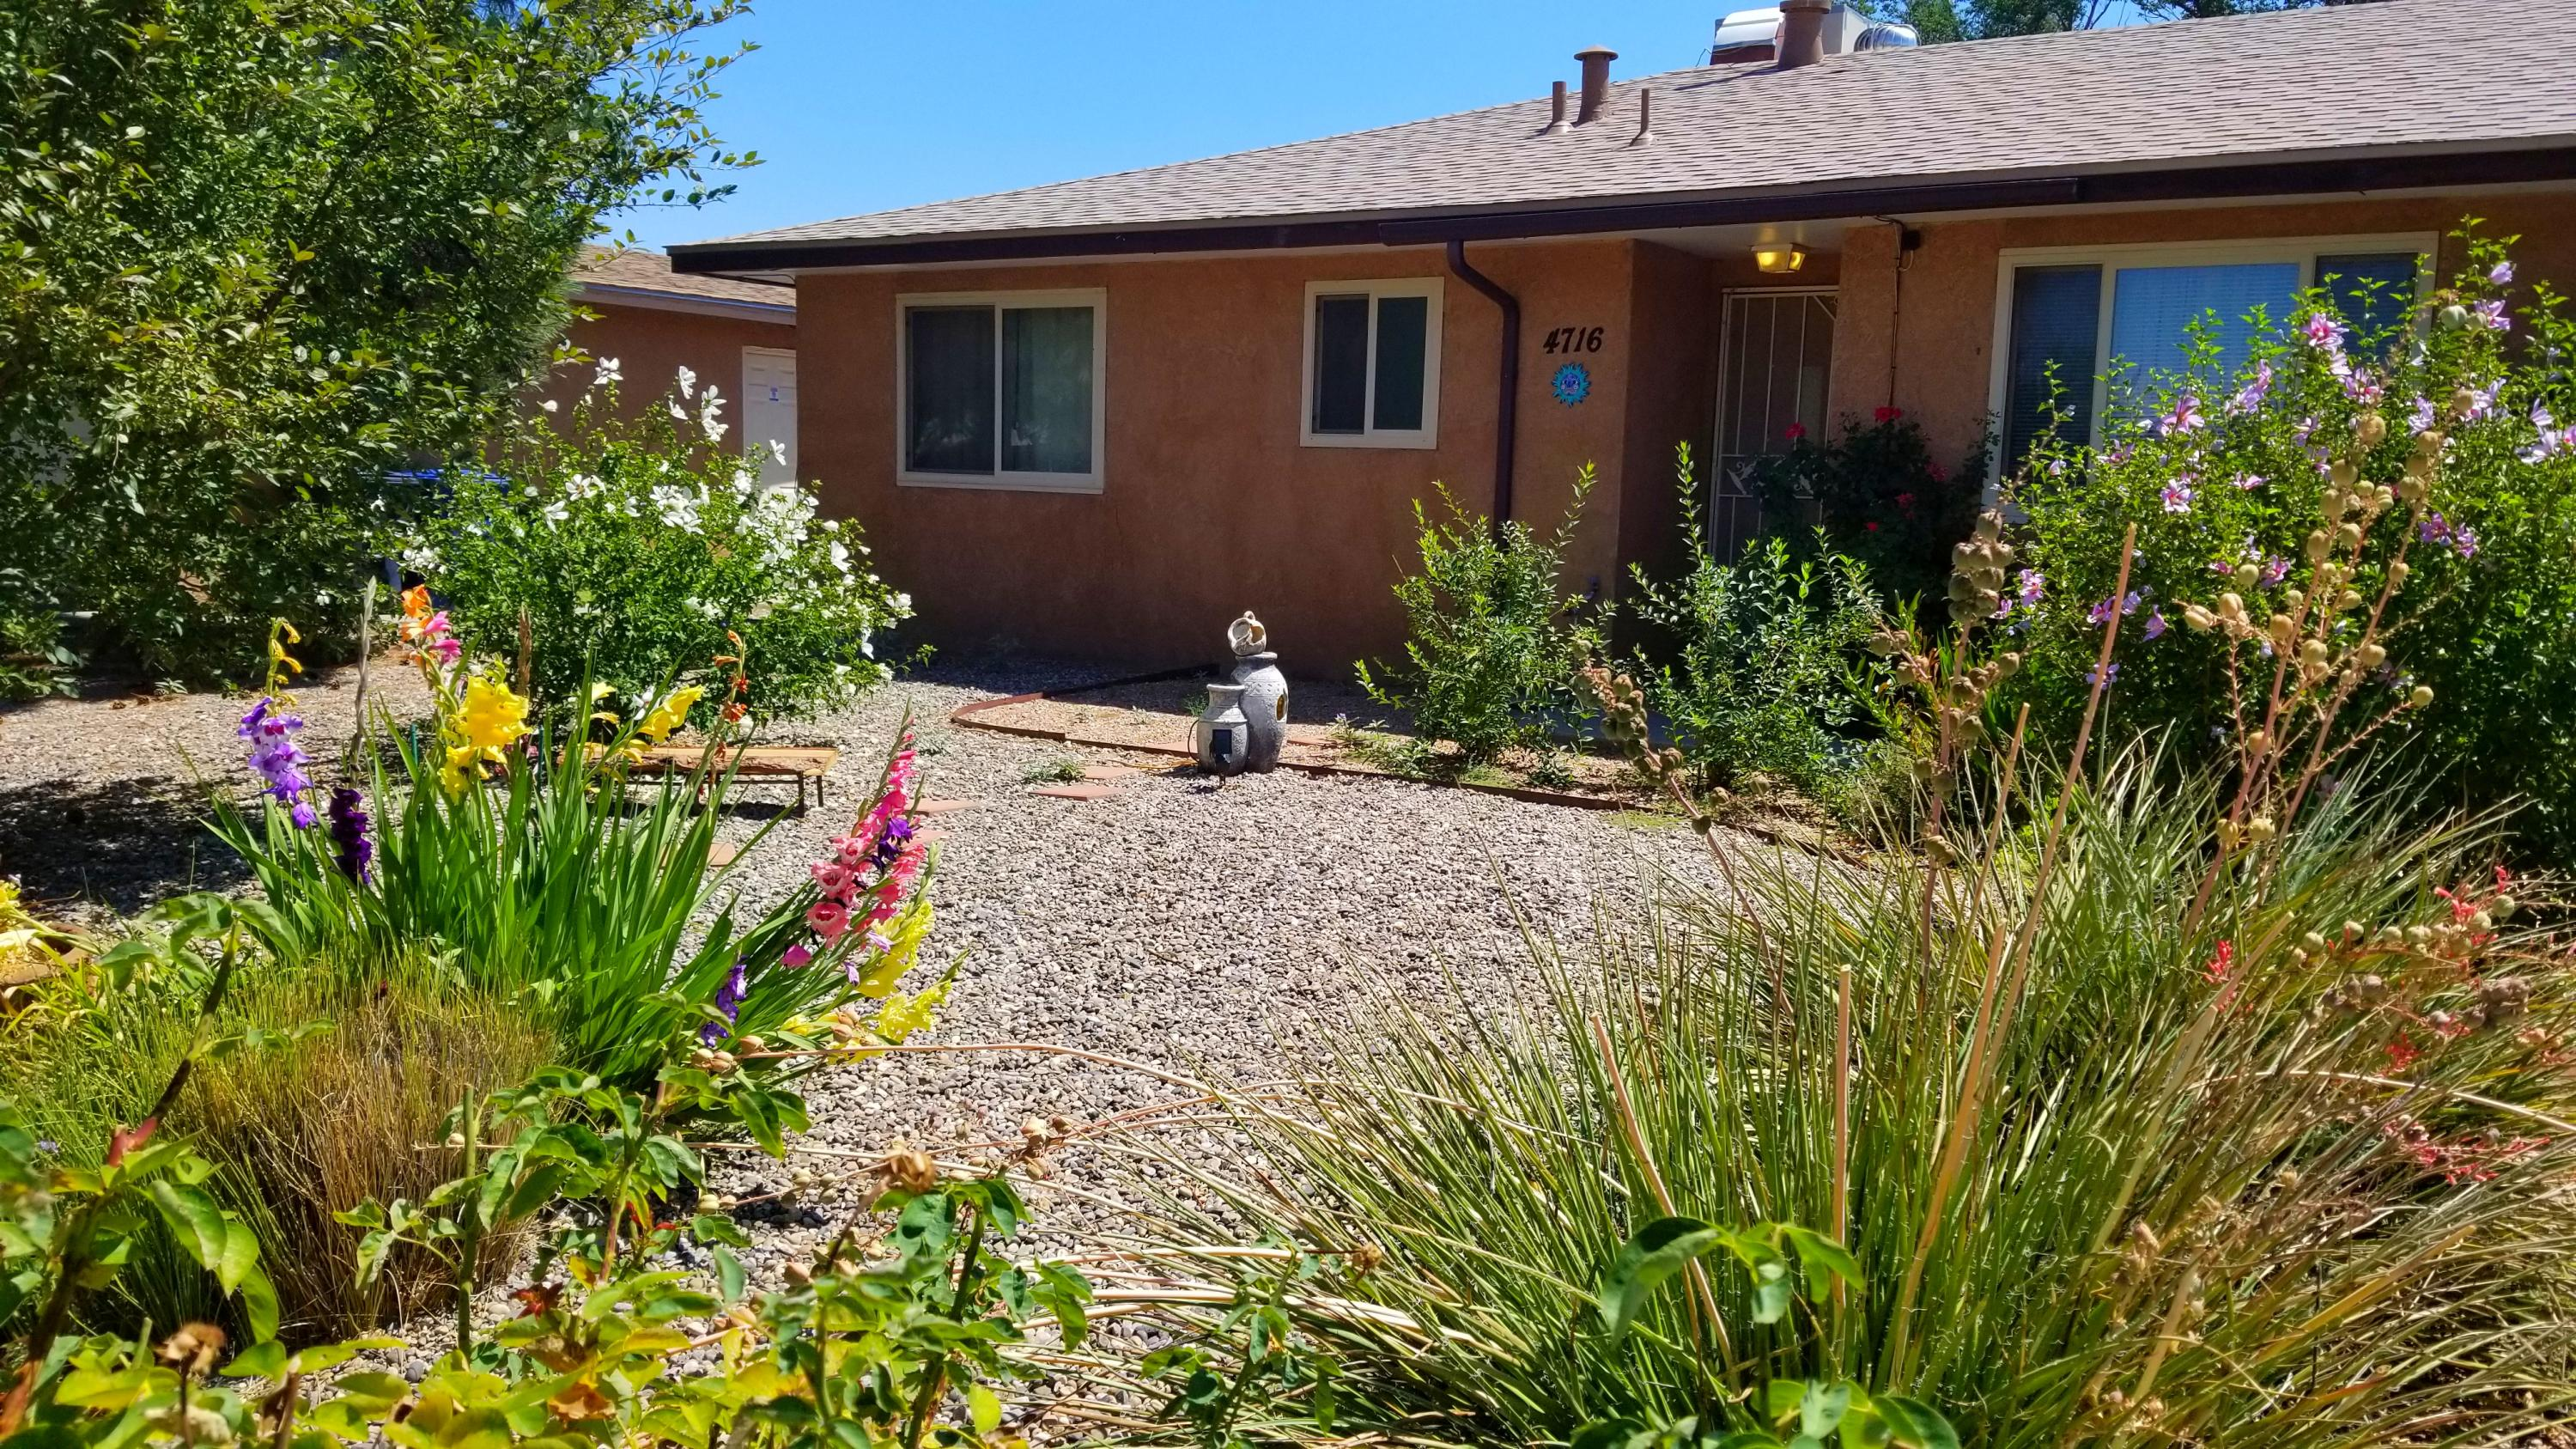 4716 OVERLAND Street NE Property Photo - Albuquerque, NM real estate listing